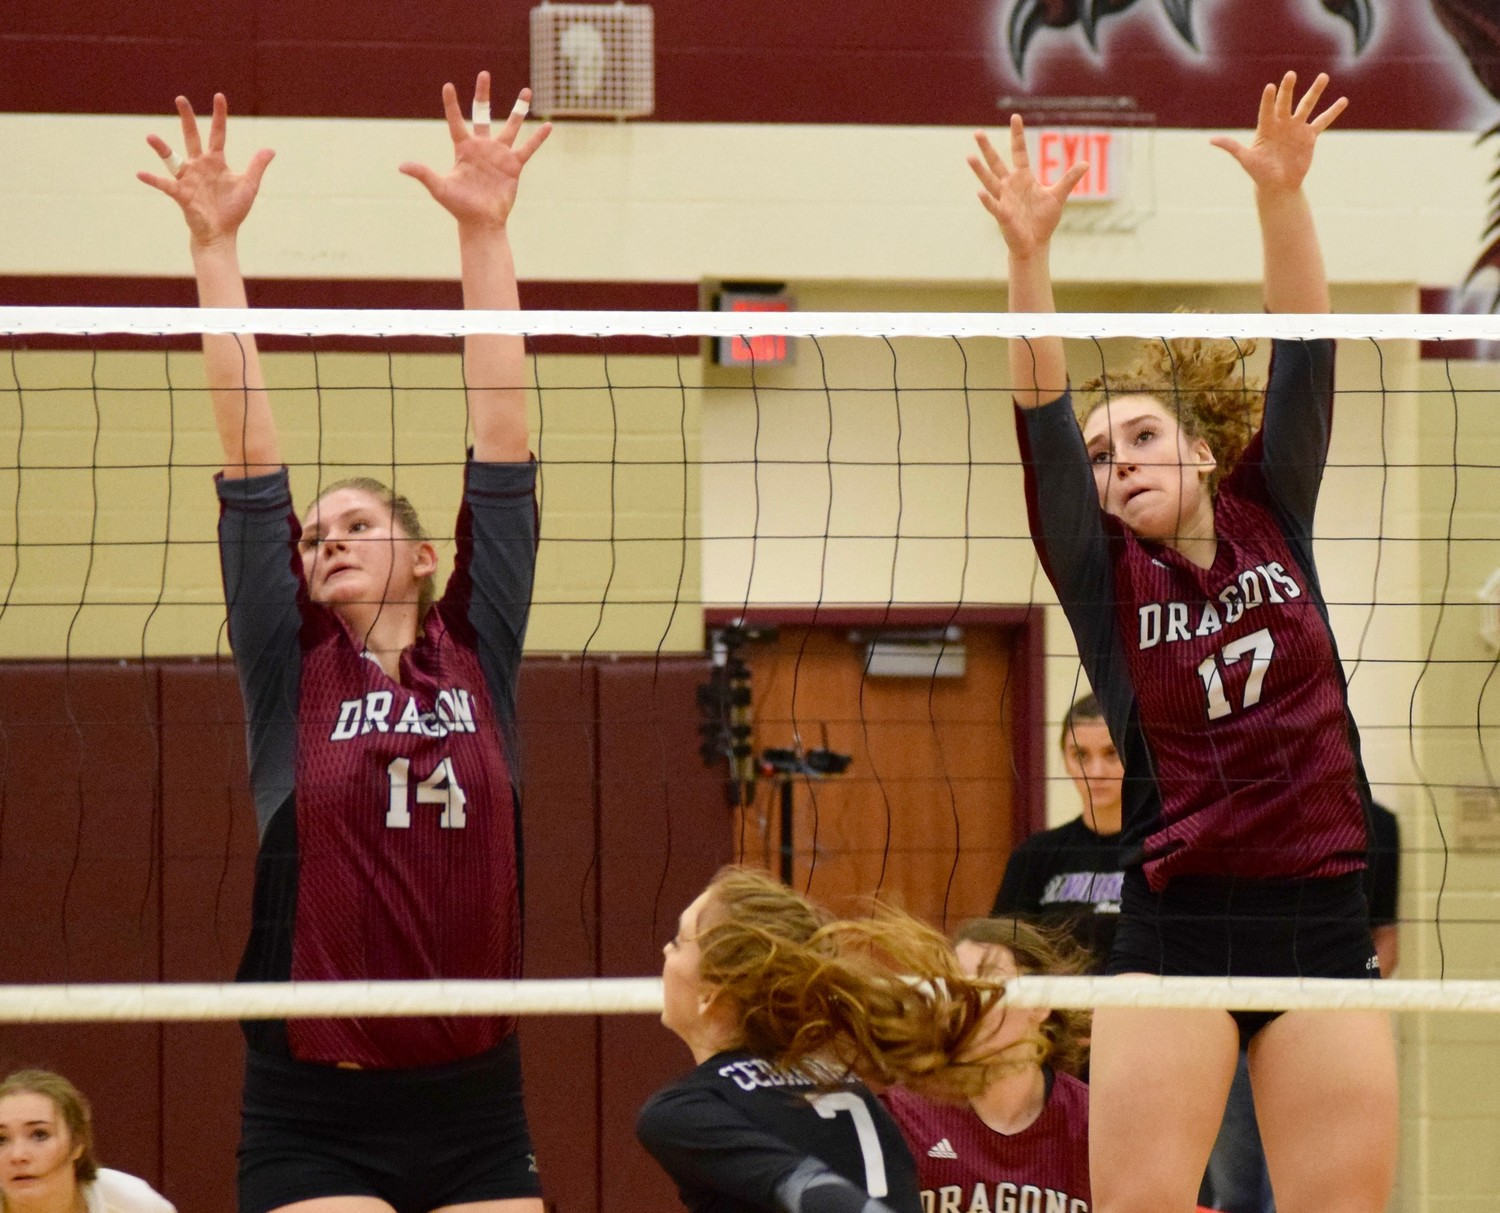 Yasmina Kadic, left, Lauren Malone and Round Rock swept Cedar Ridge 3-0 (25-18, 25-22, 25-23) at home Tuesday night.